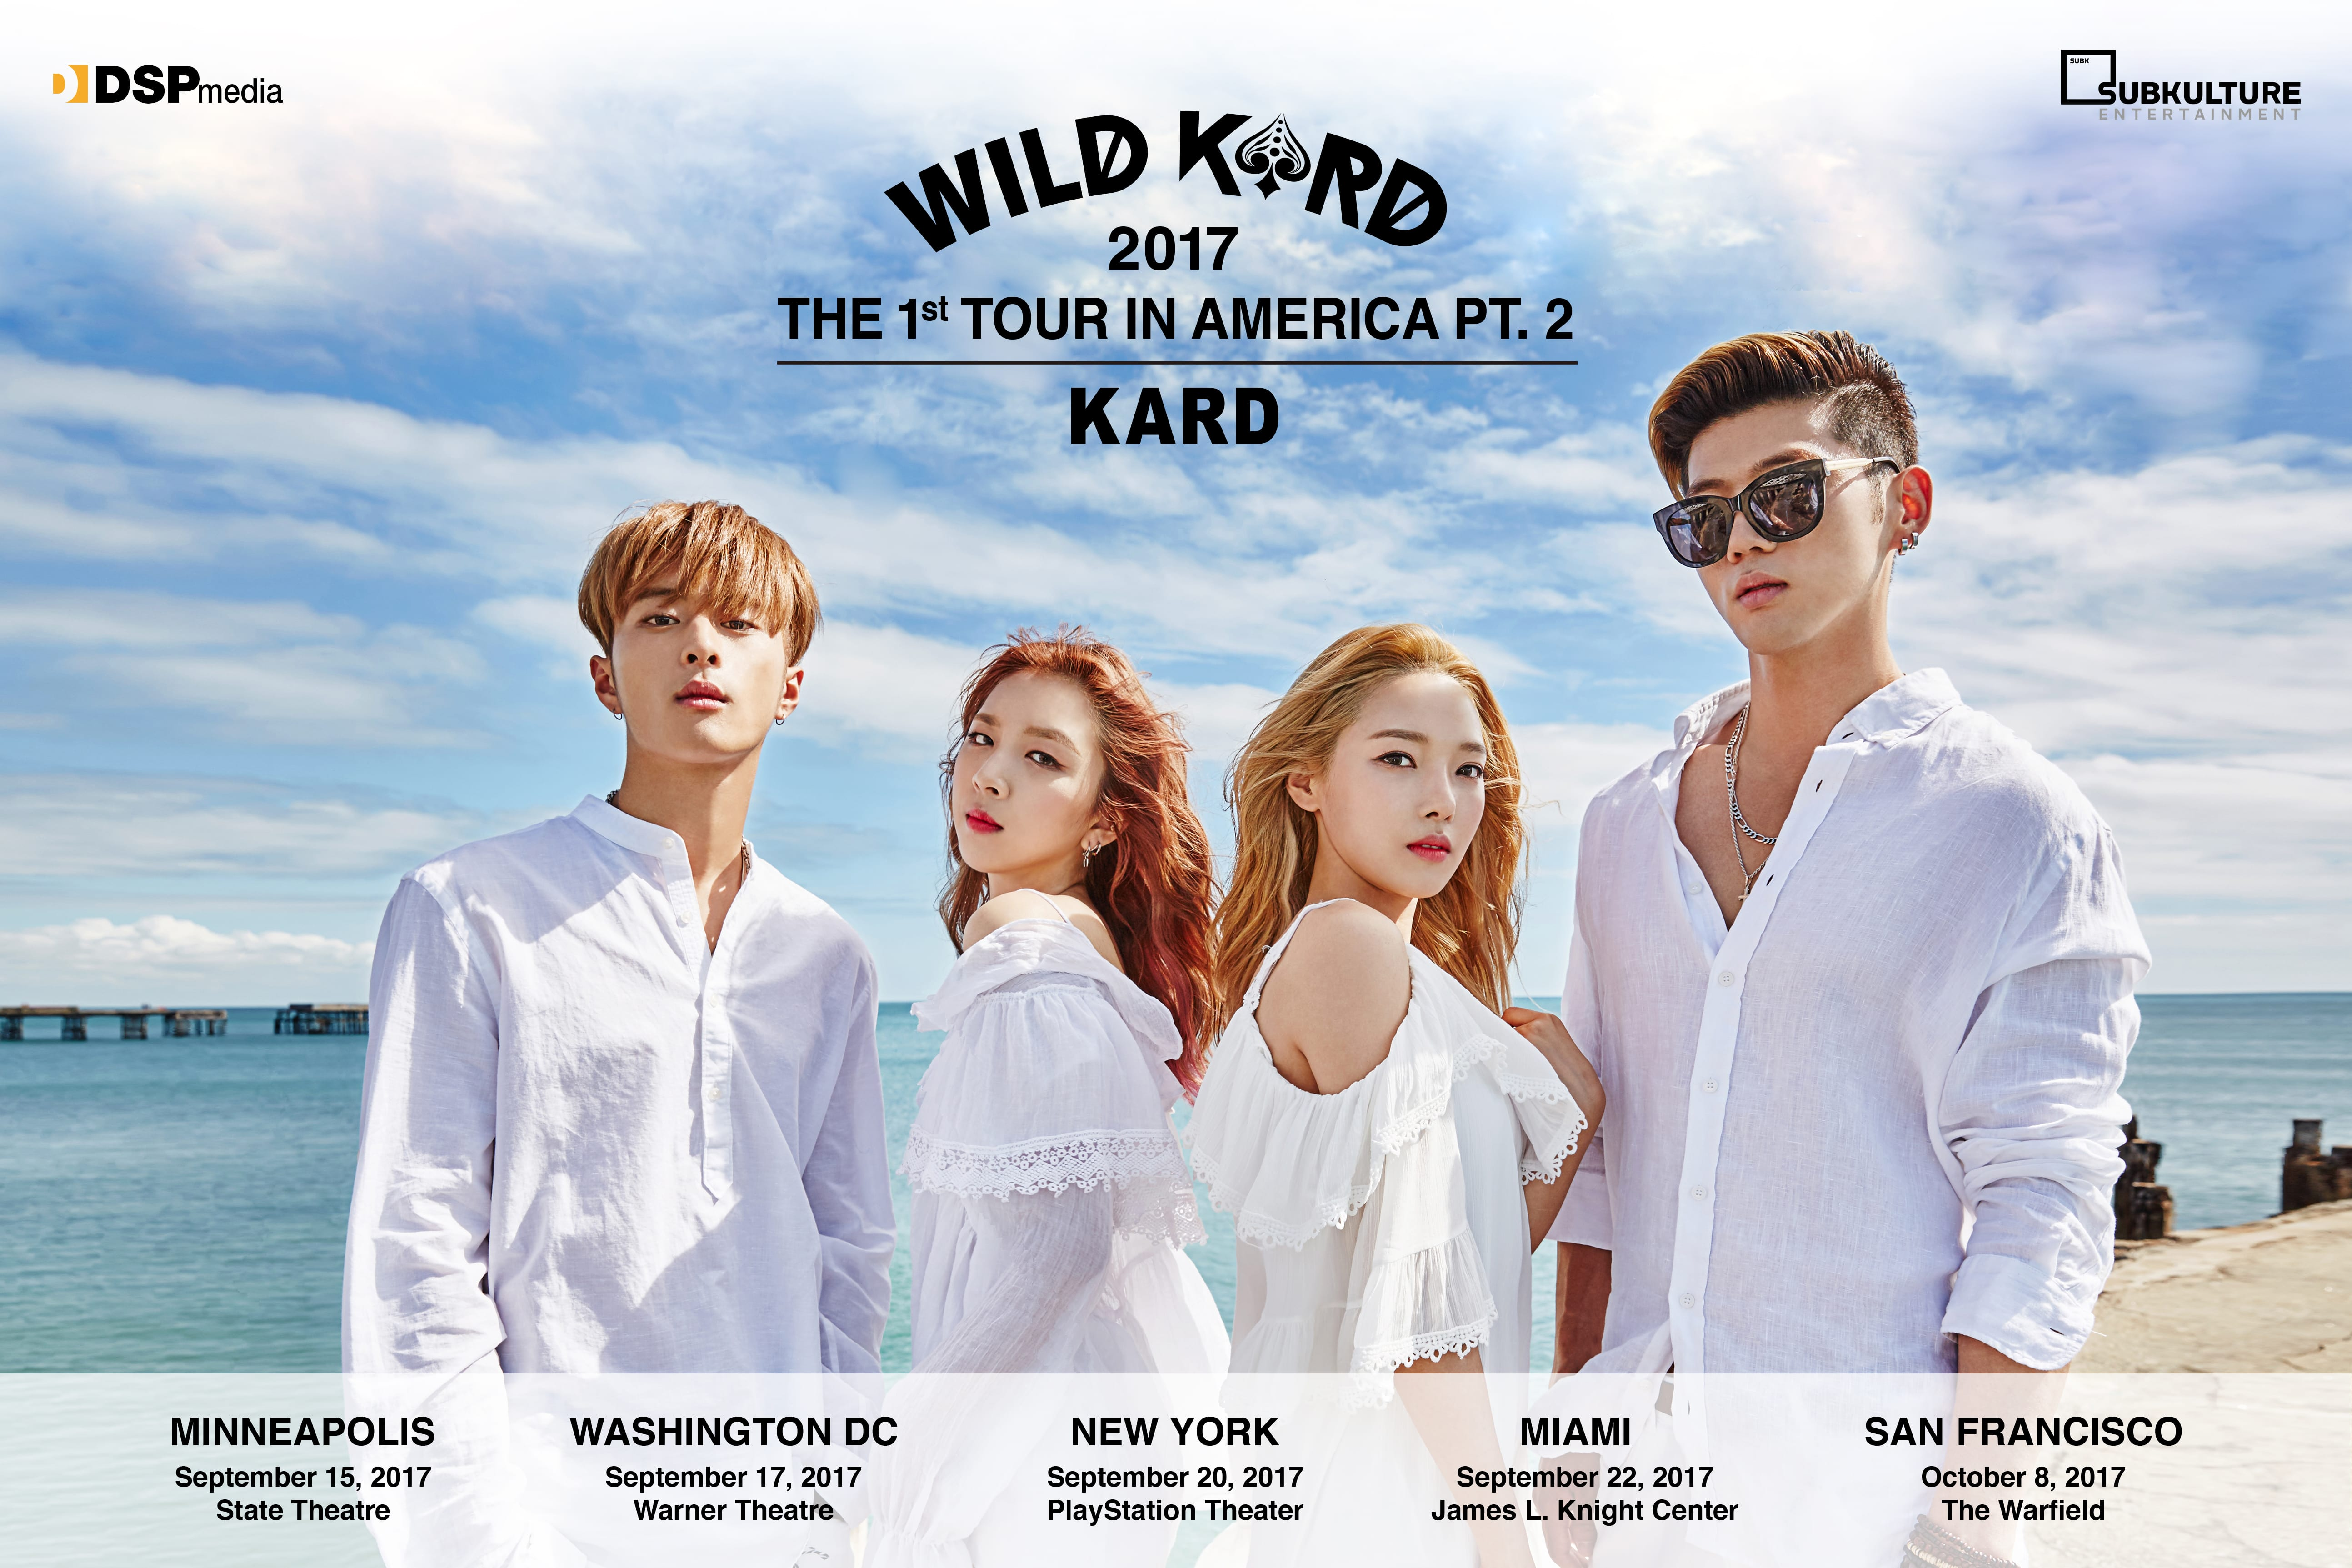 KARD Returns With Part 2 Of WILD KARD 2017 THE 1ST TOUR IN AMERICA + Ticket Information